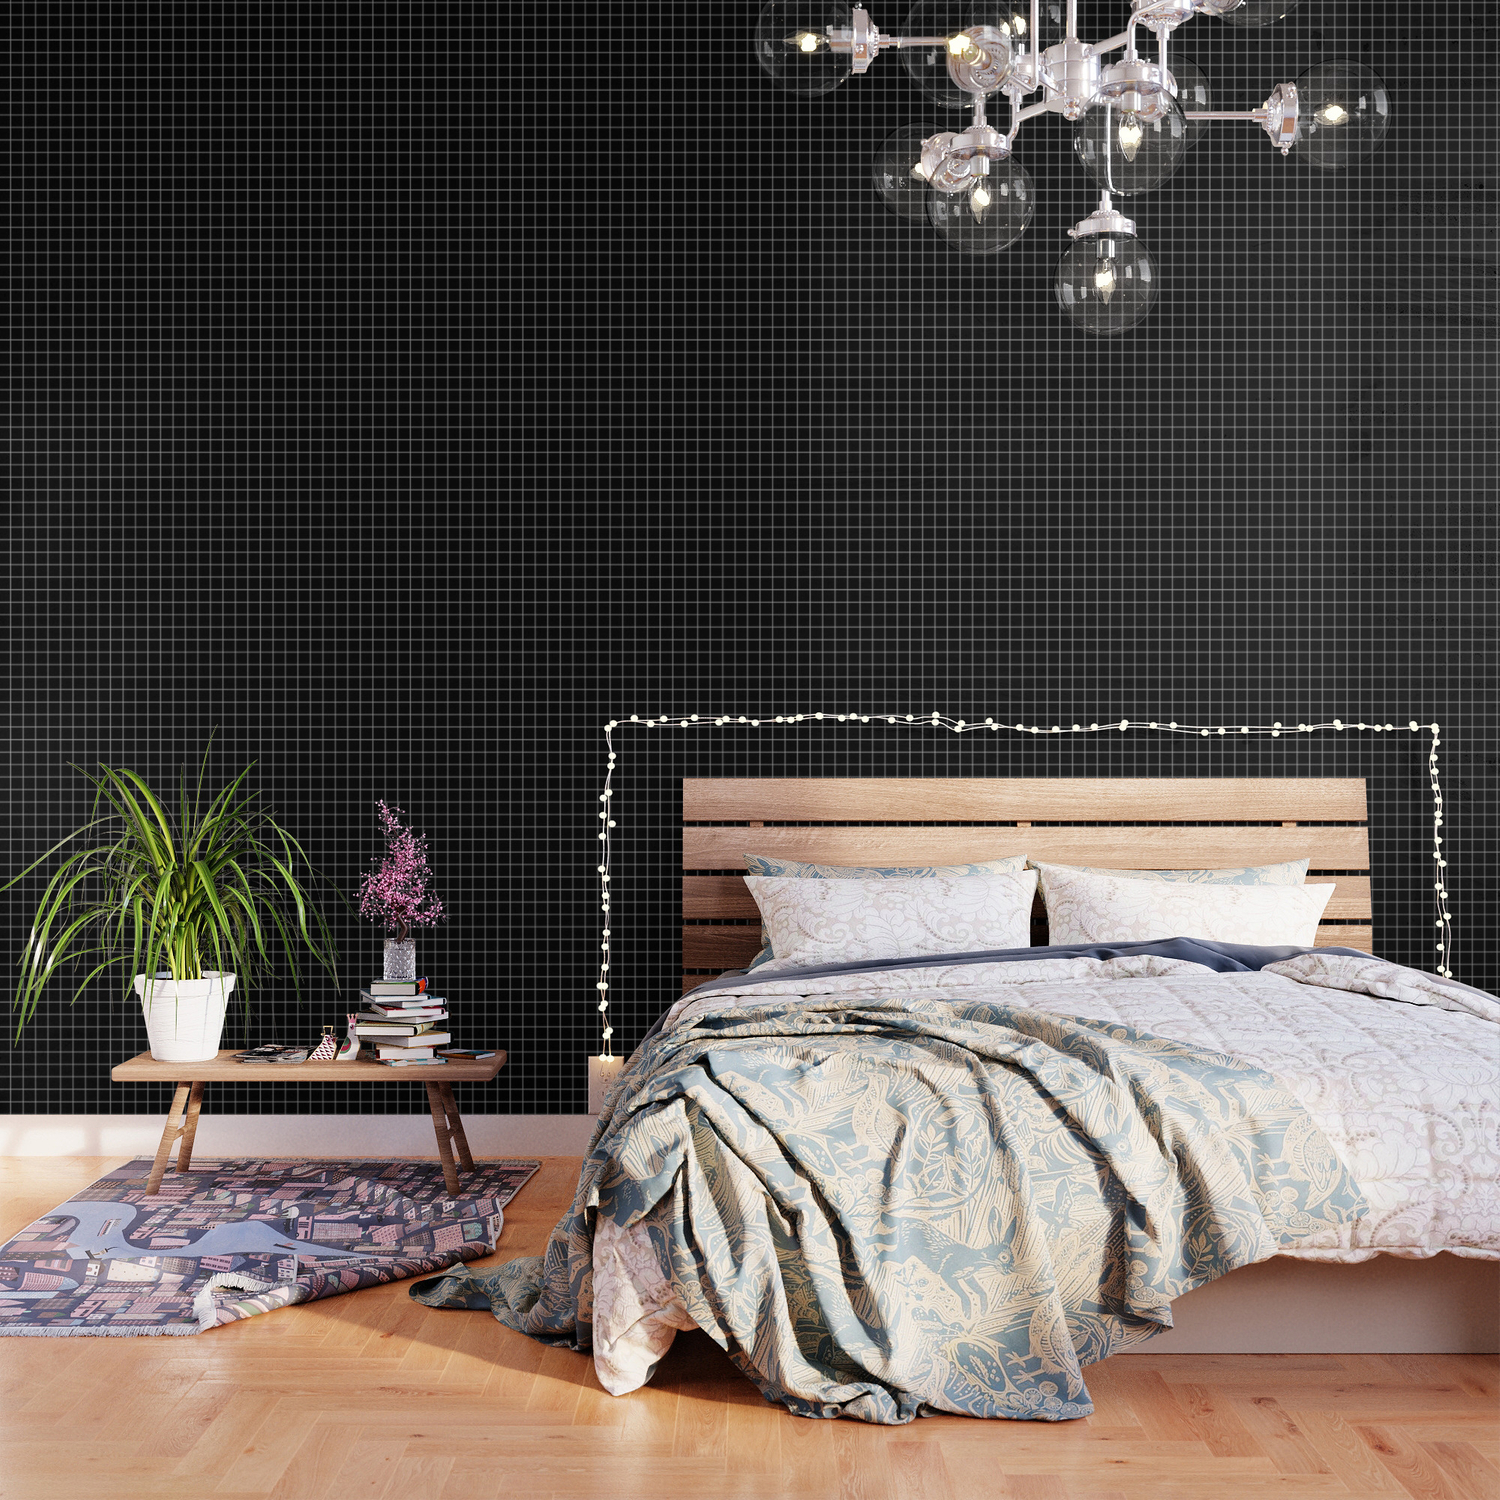 Grid Pattern Line Stripe Black And White Minimalist Geometric Stripes Lines Wallpaper By Beautifulhomes Society6